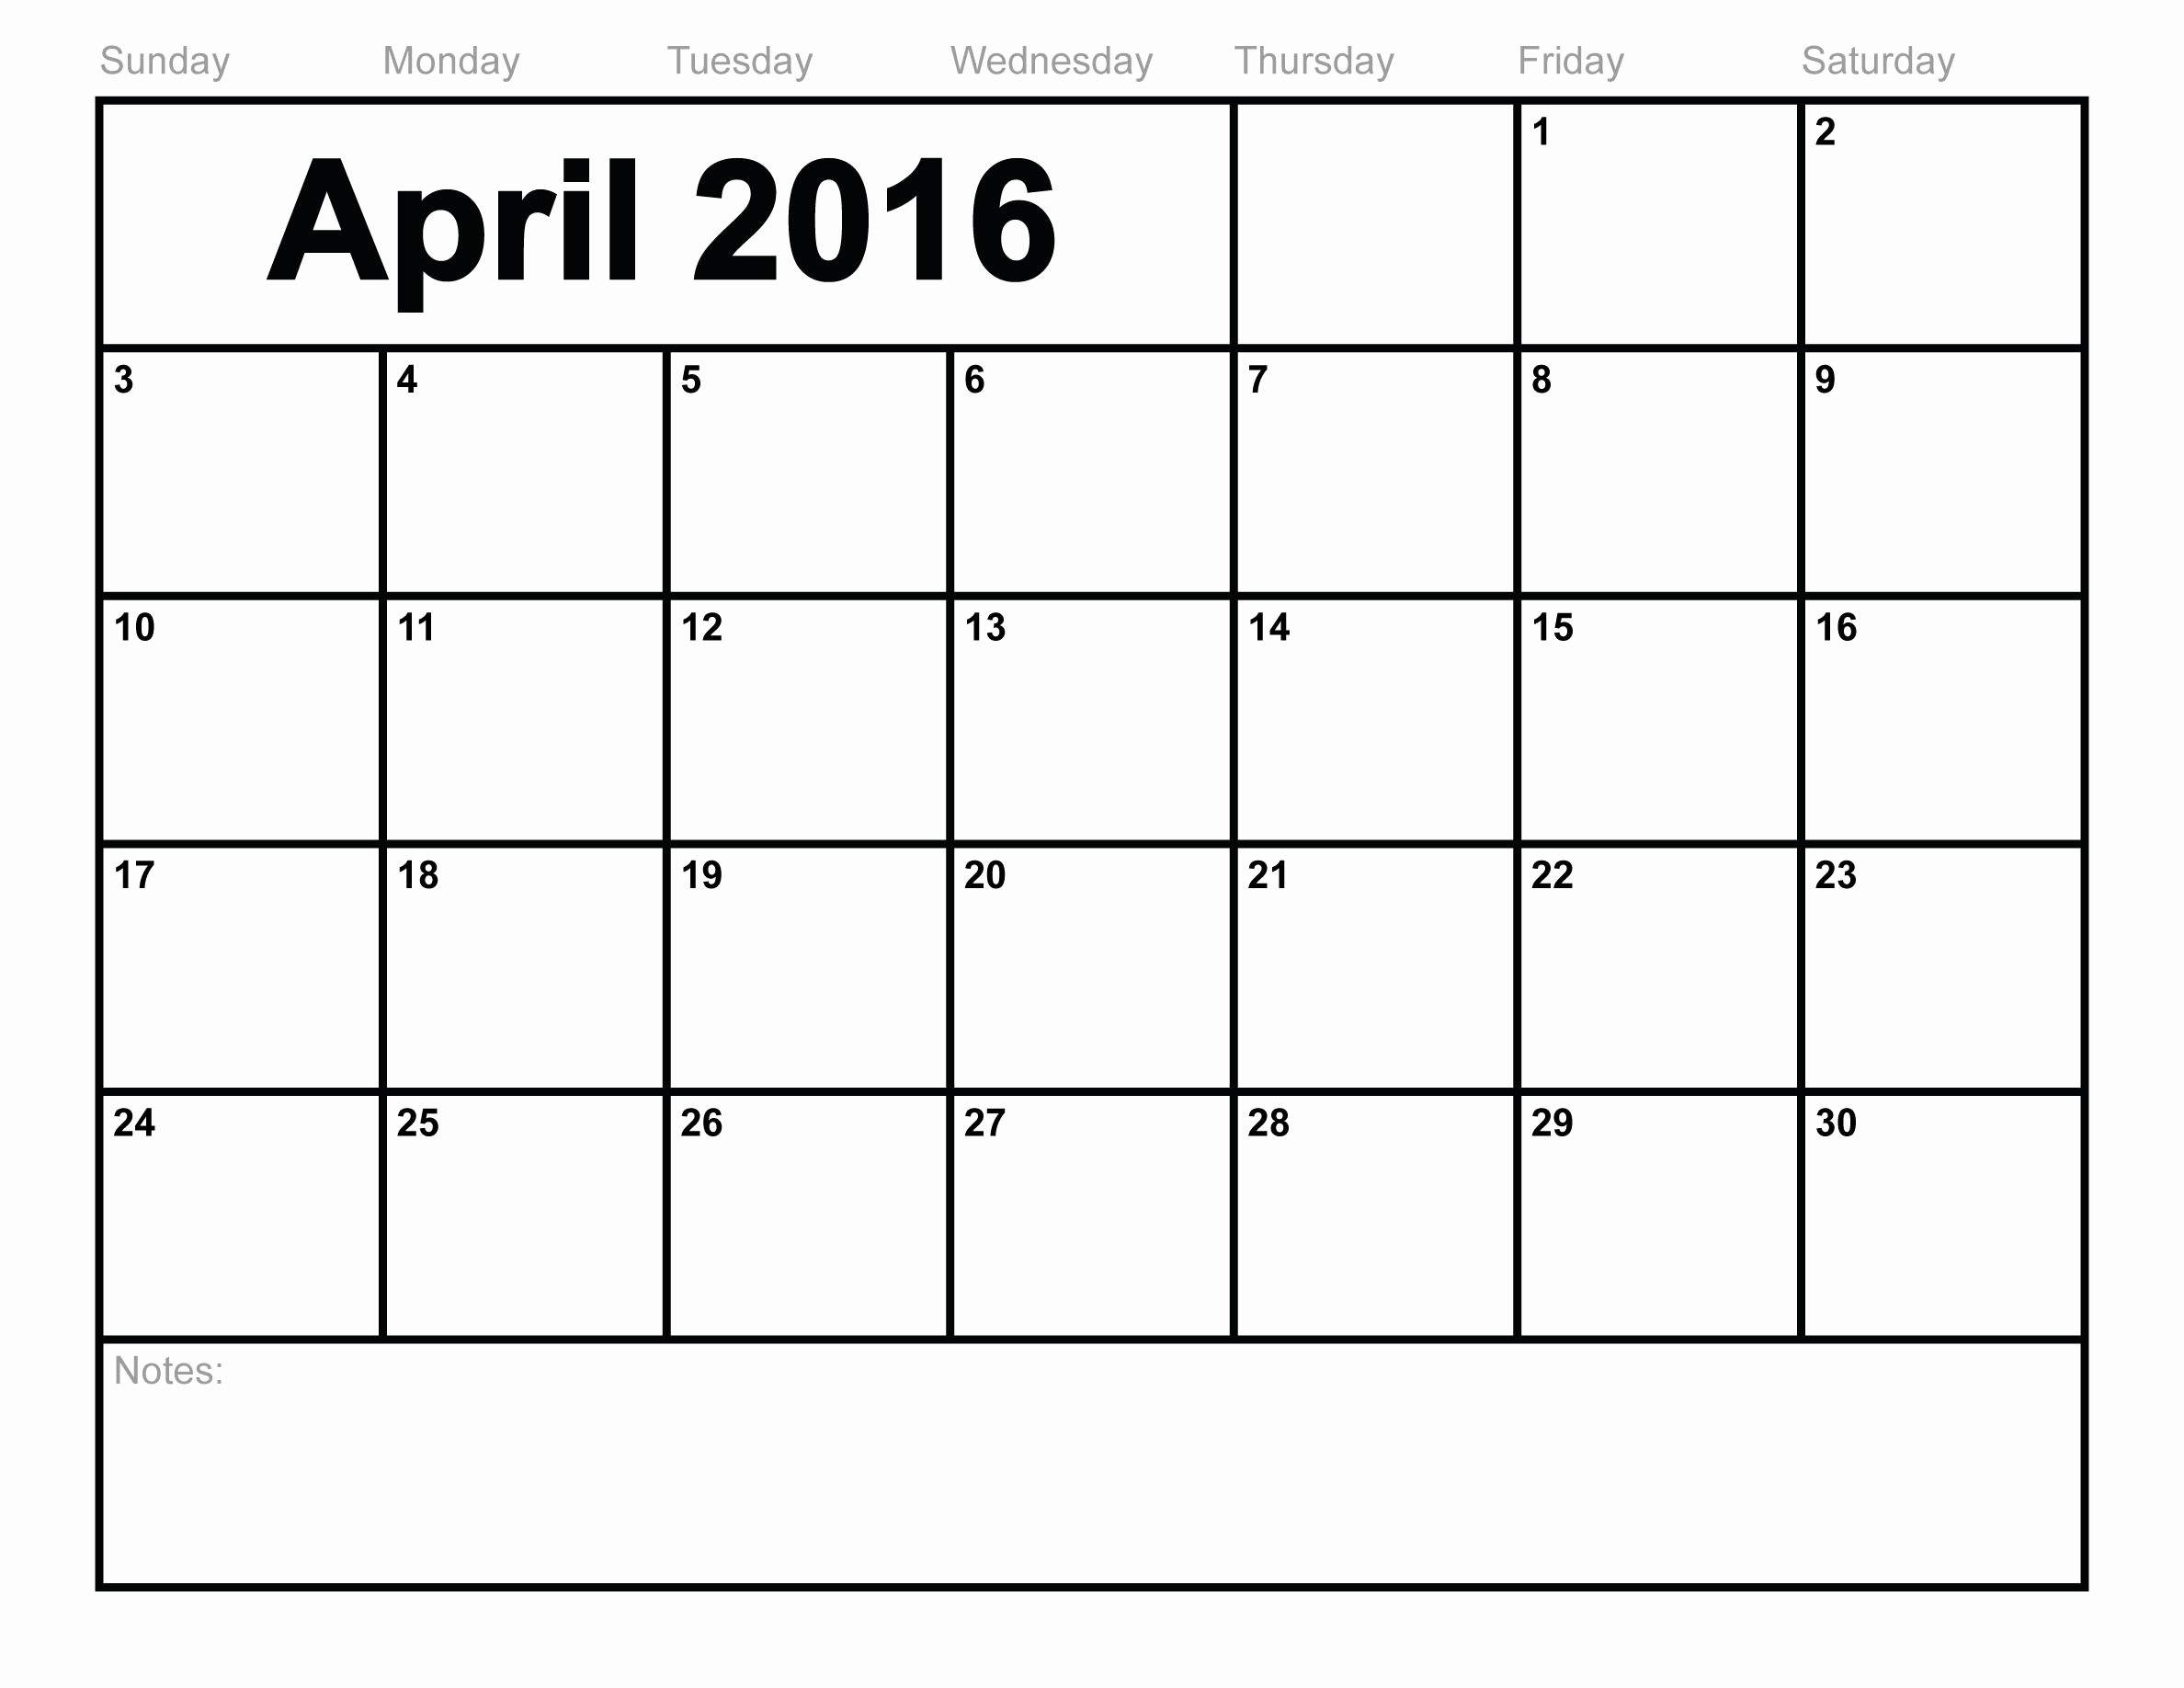 Monday to Sunday Calendar 2017 New April 2016 Free Calendar Monday Through Sunday